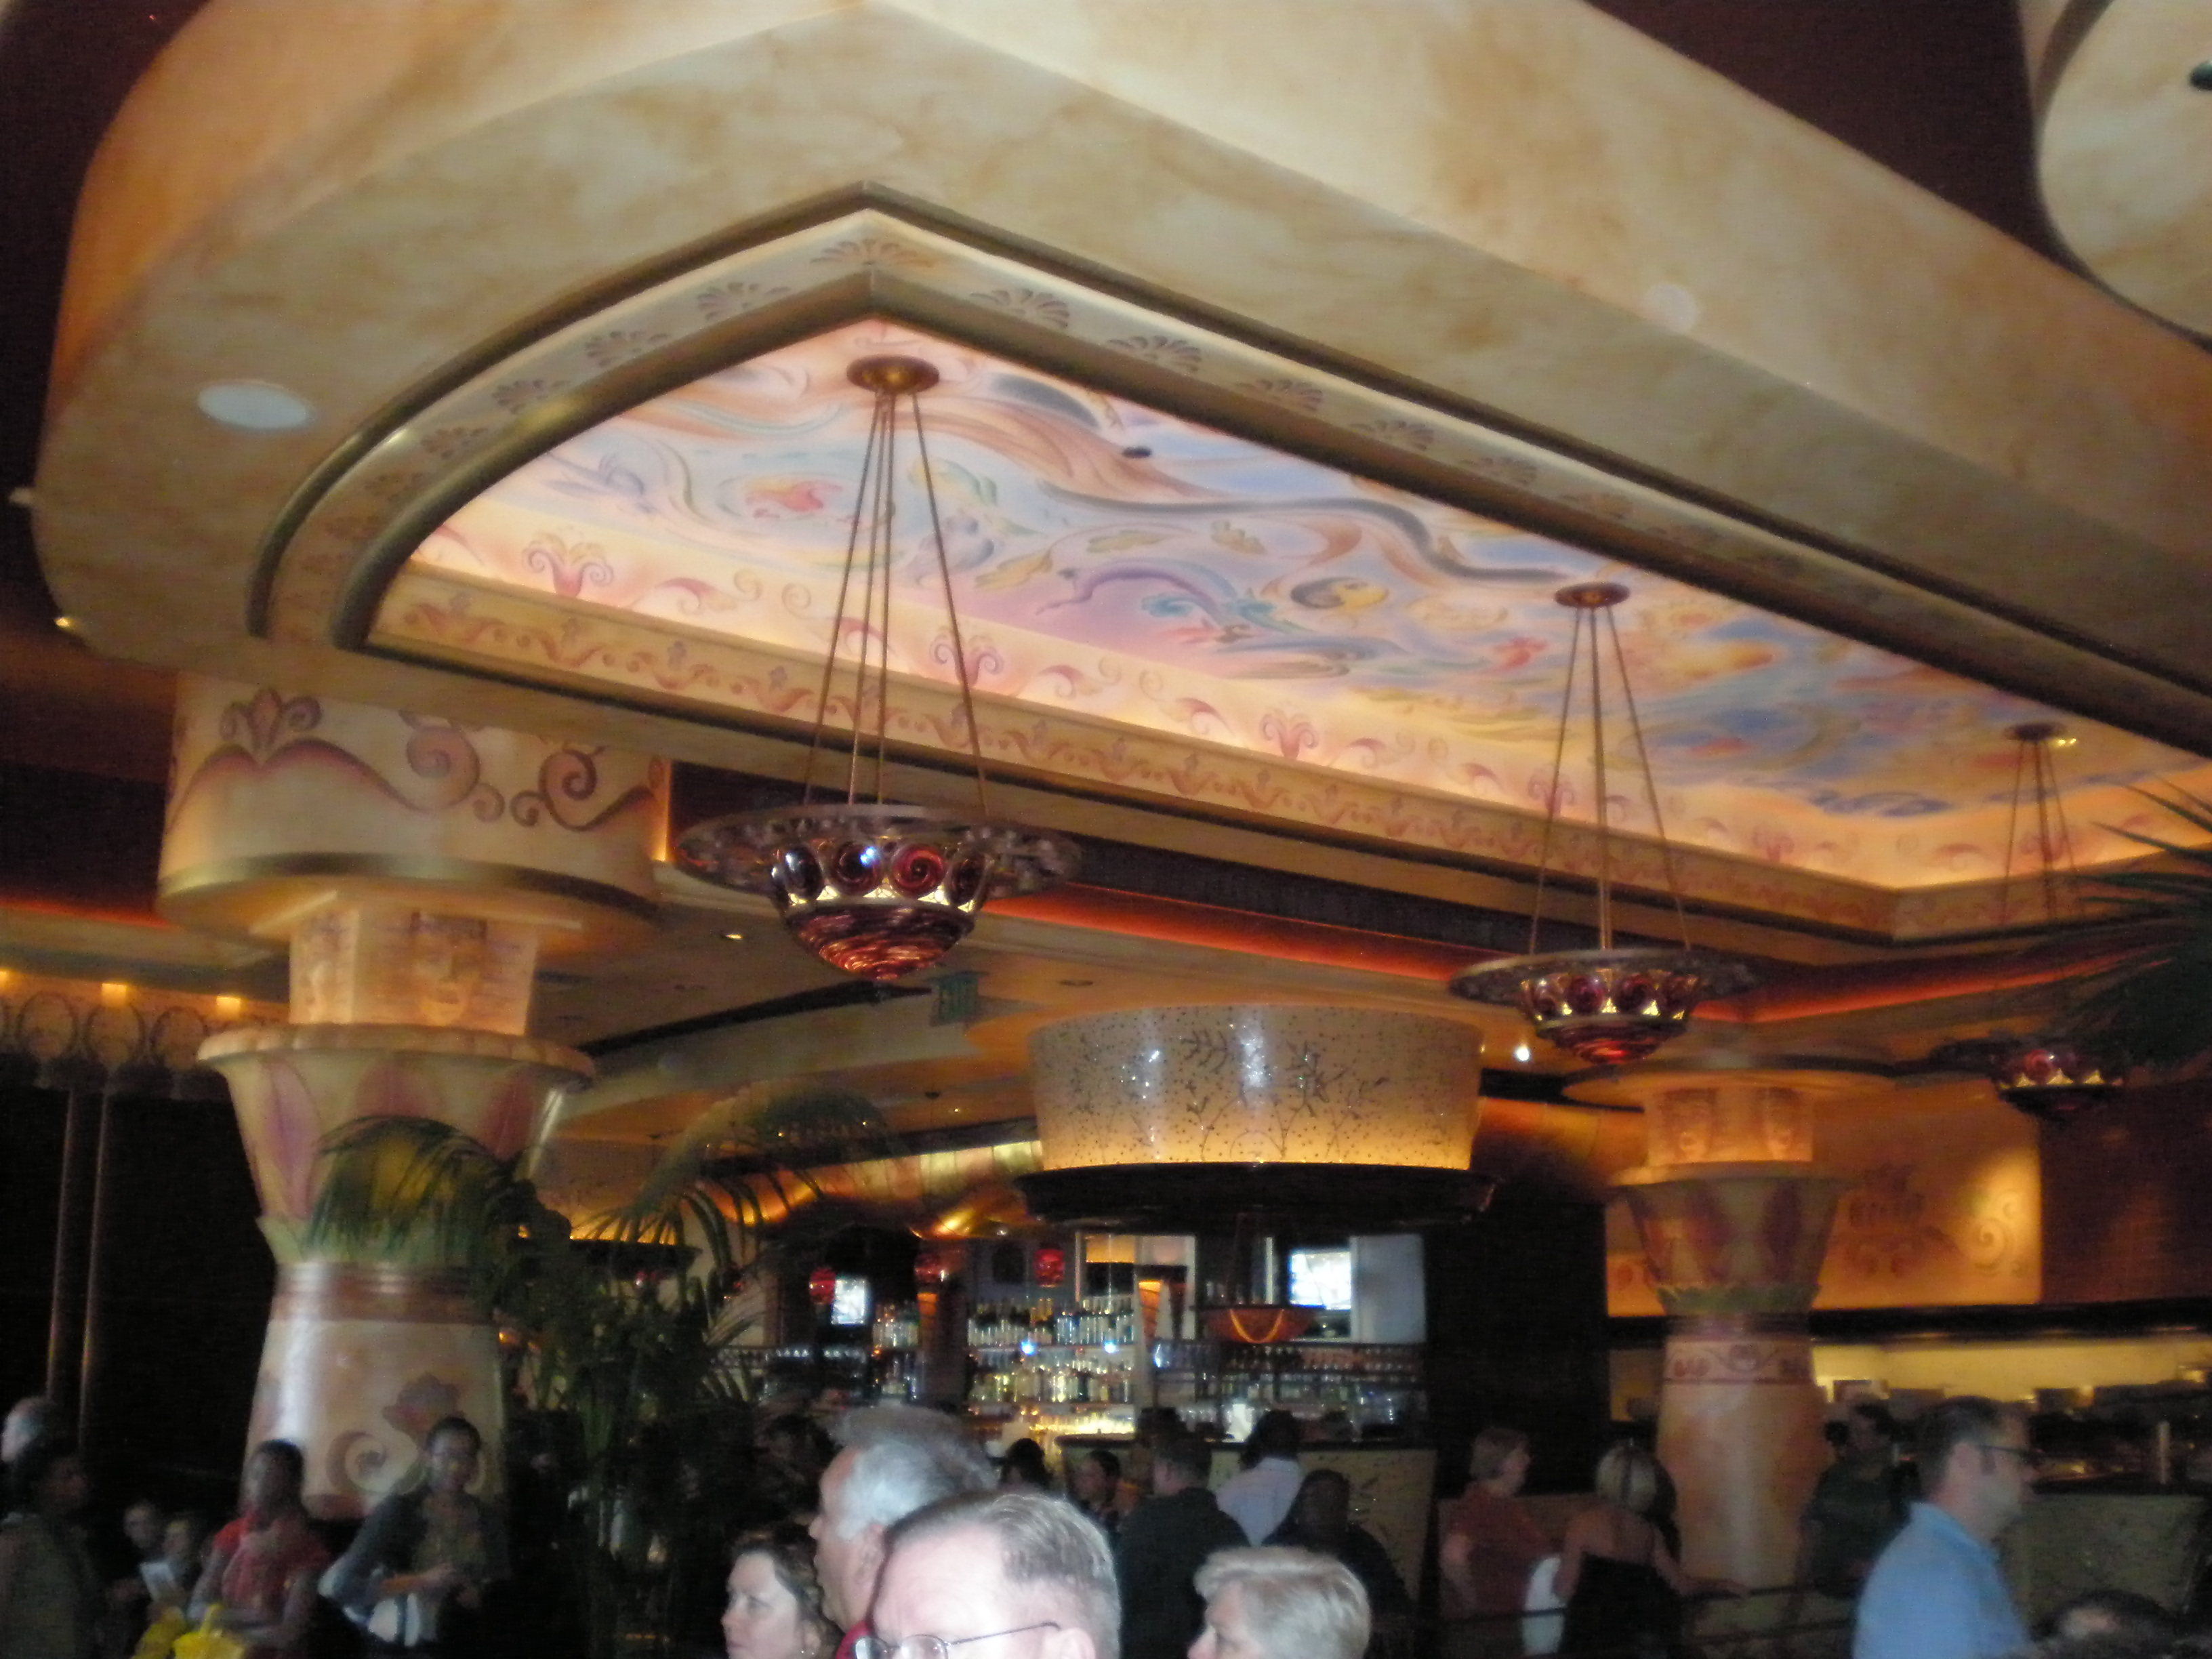 Cheesecake Factory Tucson Mall is a Bakery in Tucson. Plan your road trip to Cheesecake Factory Tucson Mall in AZ with Roadtrippers.